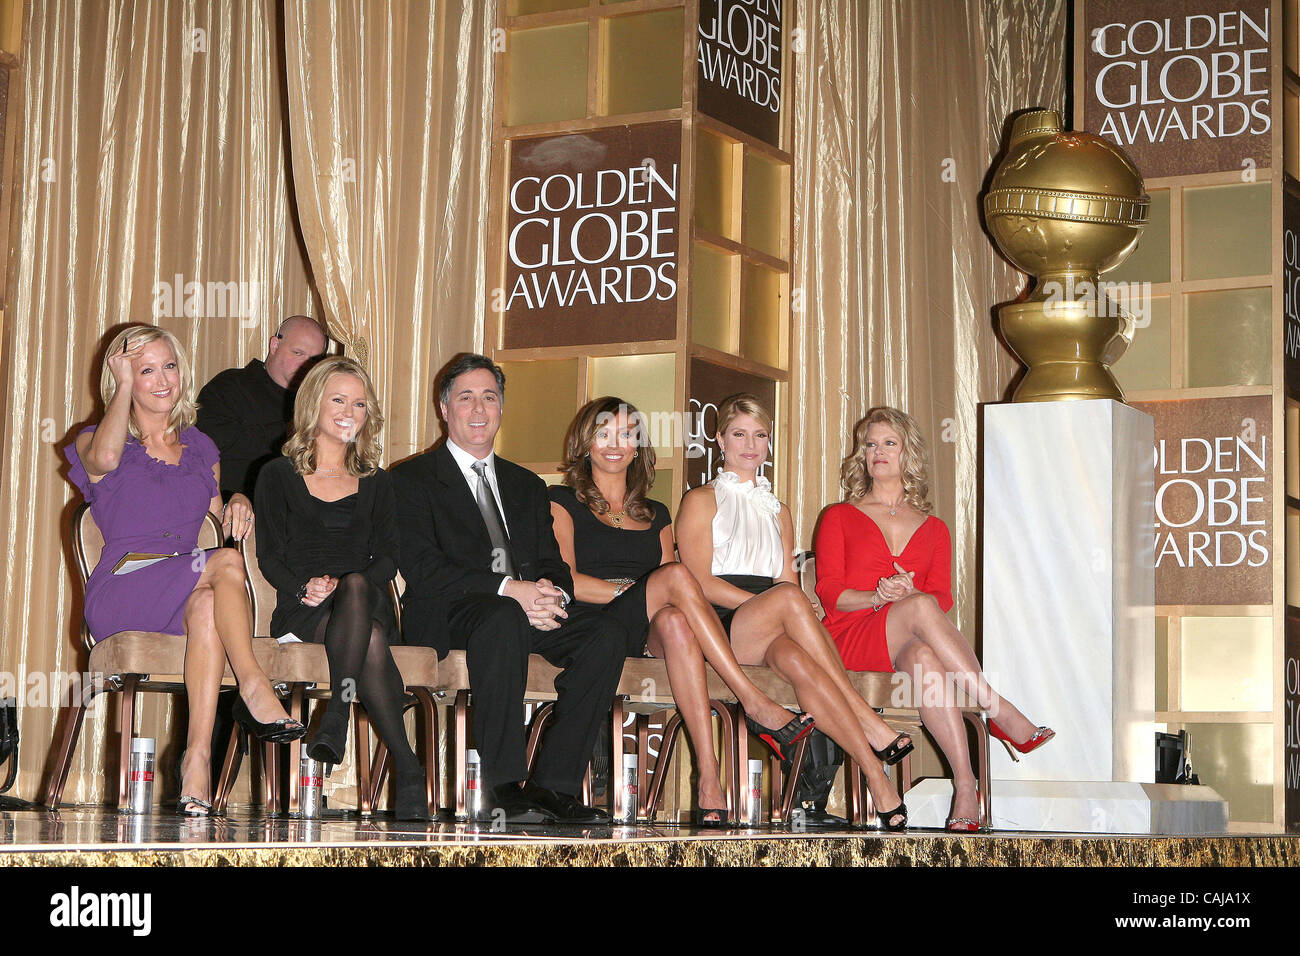 Hosts LARA SPENCER BROOKE ANDERSON JIM MORET TV GIULIANA RANCIC DAYNA DEVON And MARY HART Annoucing The Winners At 65th Golden Globe Awards